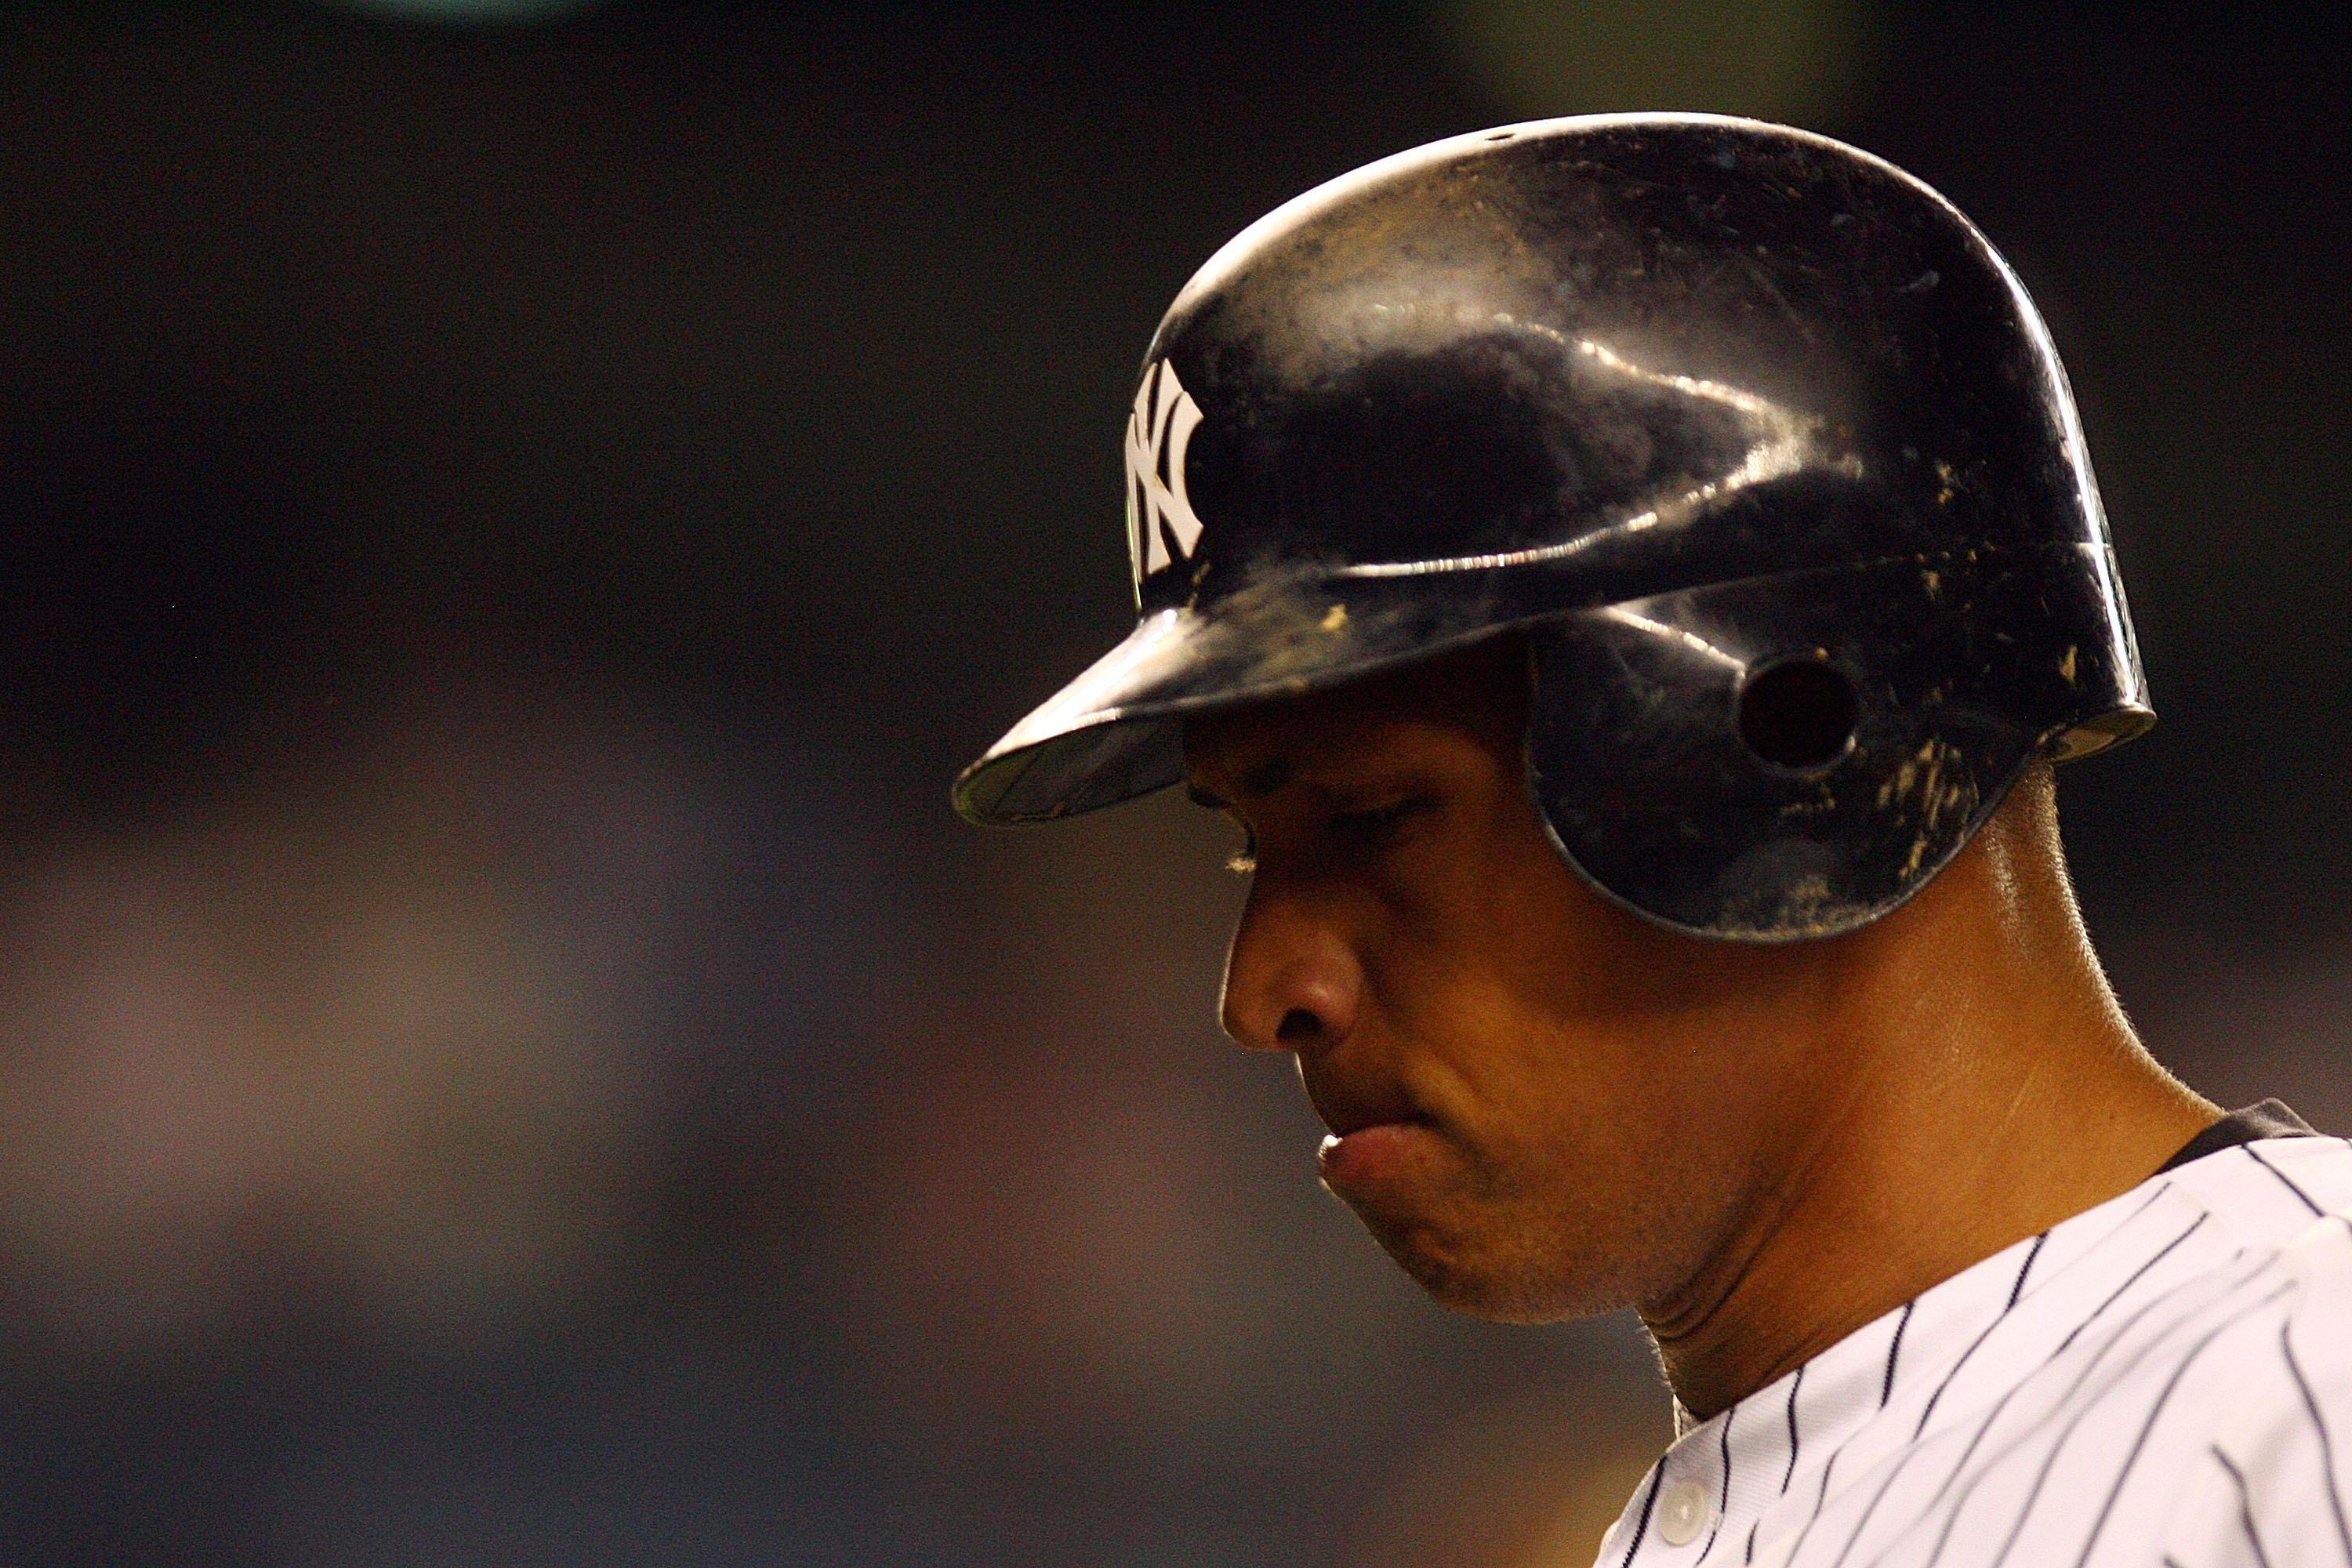 NEW YORK - OCTOBER 08:  Alex Rodriguez #13 of the New York Yankees reacts after flying out in the ninth inning against the Cleveland Indians during Game Four of the American League Division Series at Yankee Stadium on October 8, 2007 in the Bronx borough